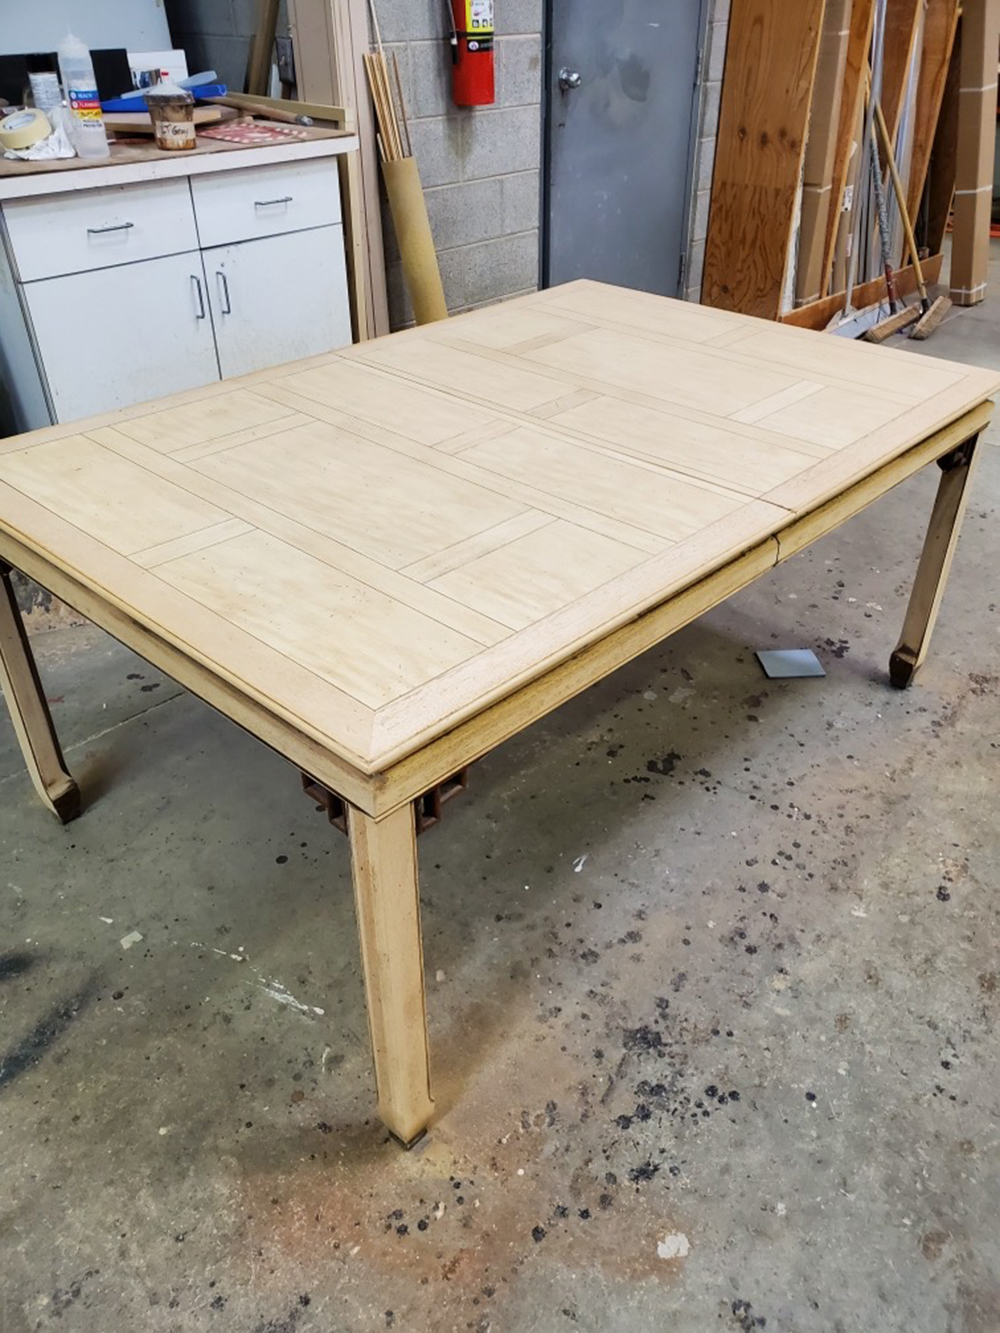 Our Vintage Dining Set Transformation + Tips for Restoration - roomfortuesday.com